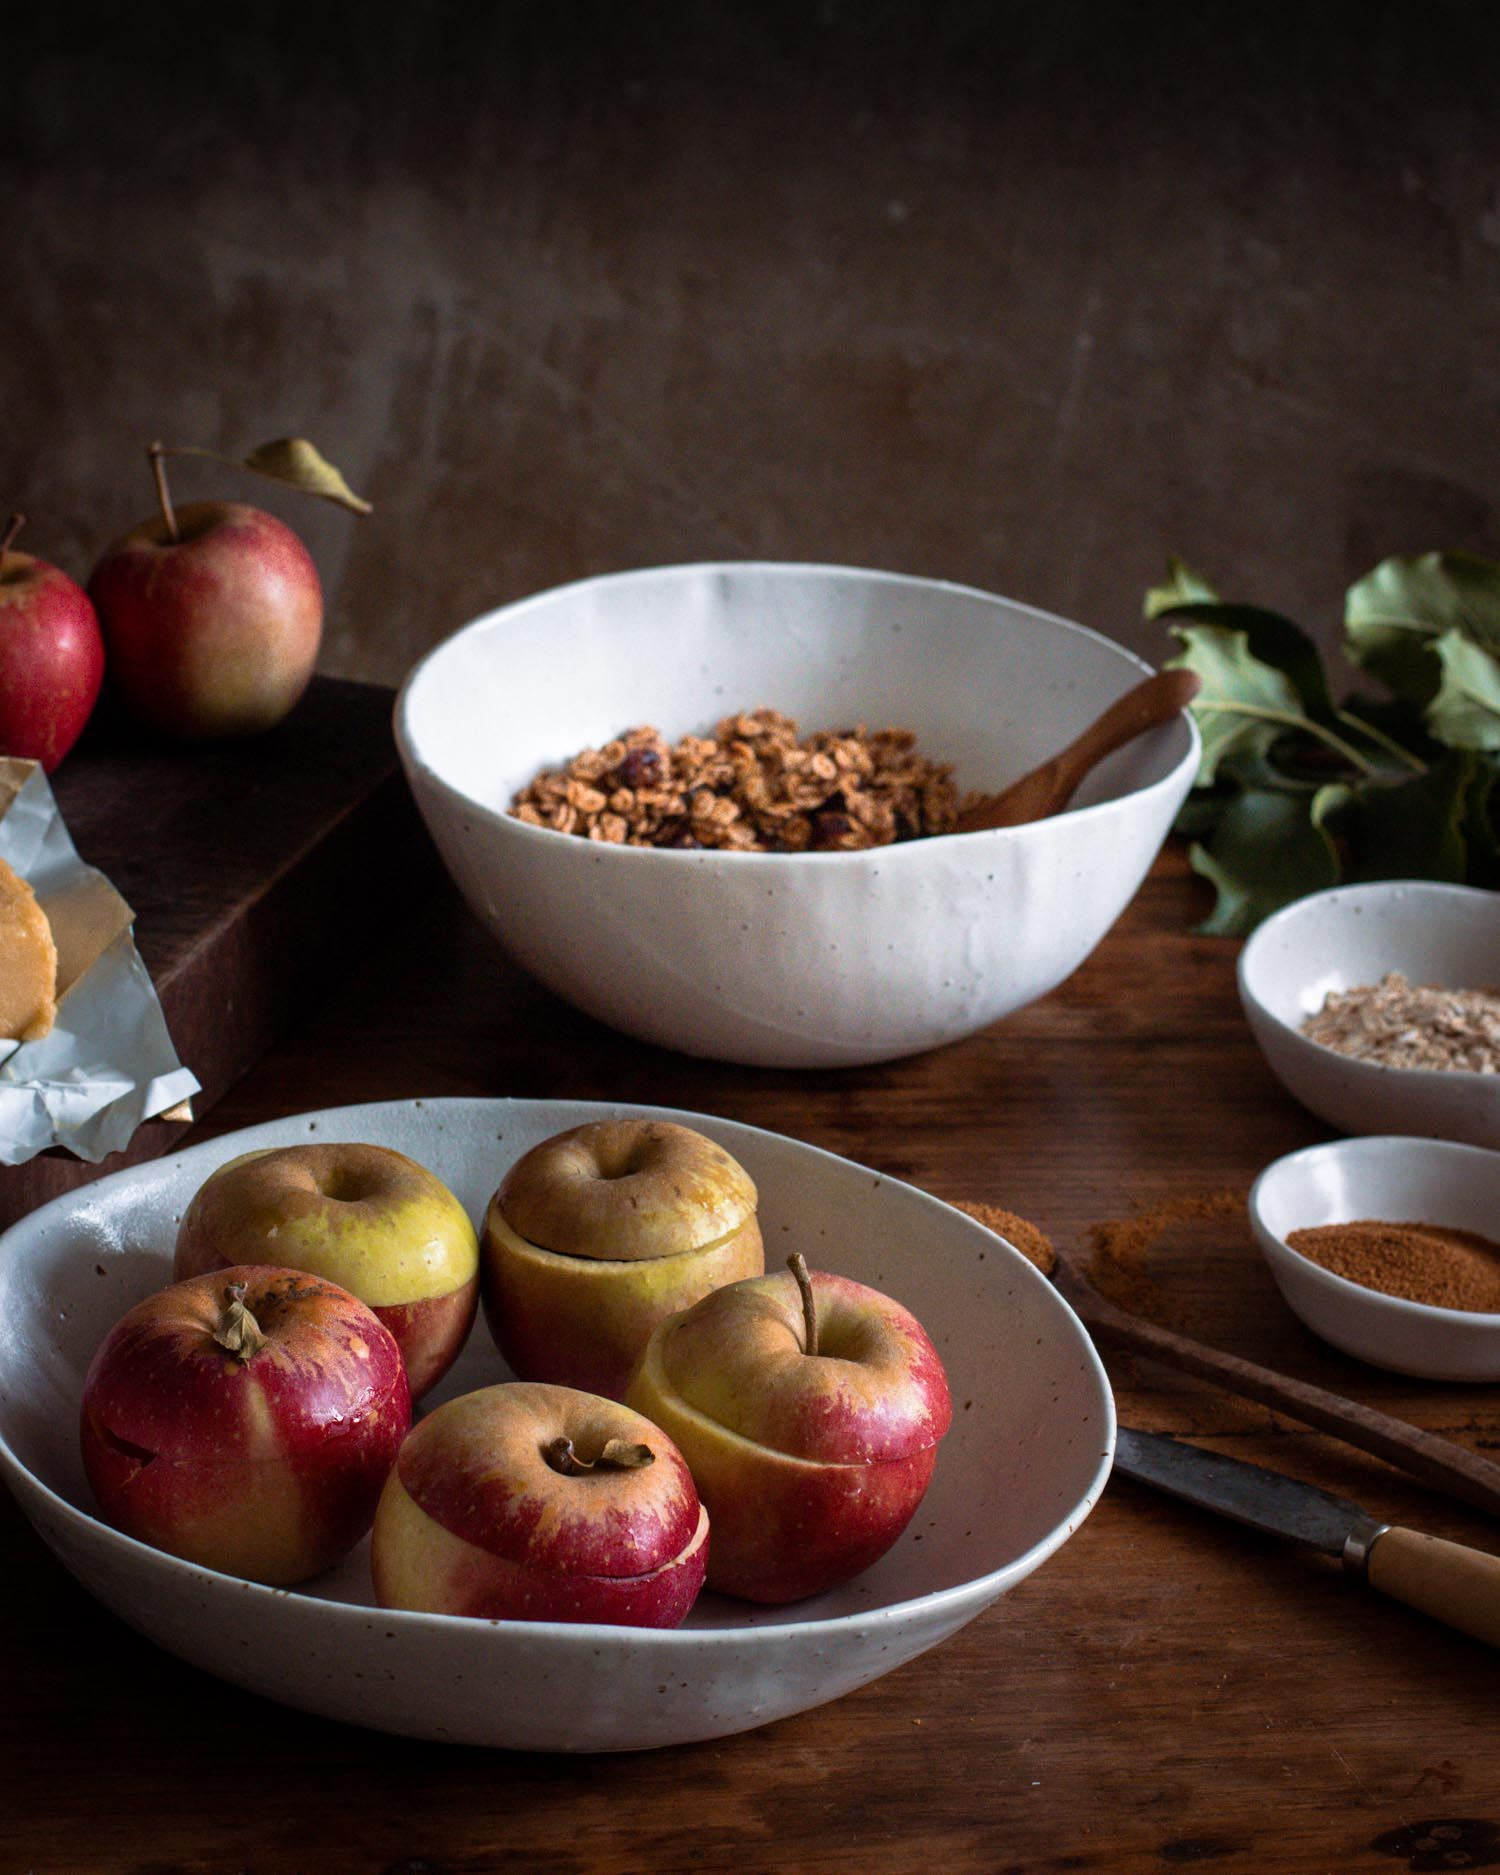 Bowl of apples ready to be filled with granola and baked in the oven.